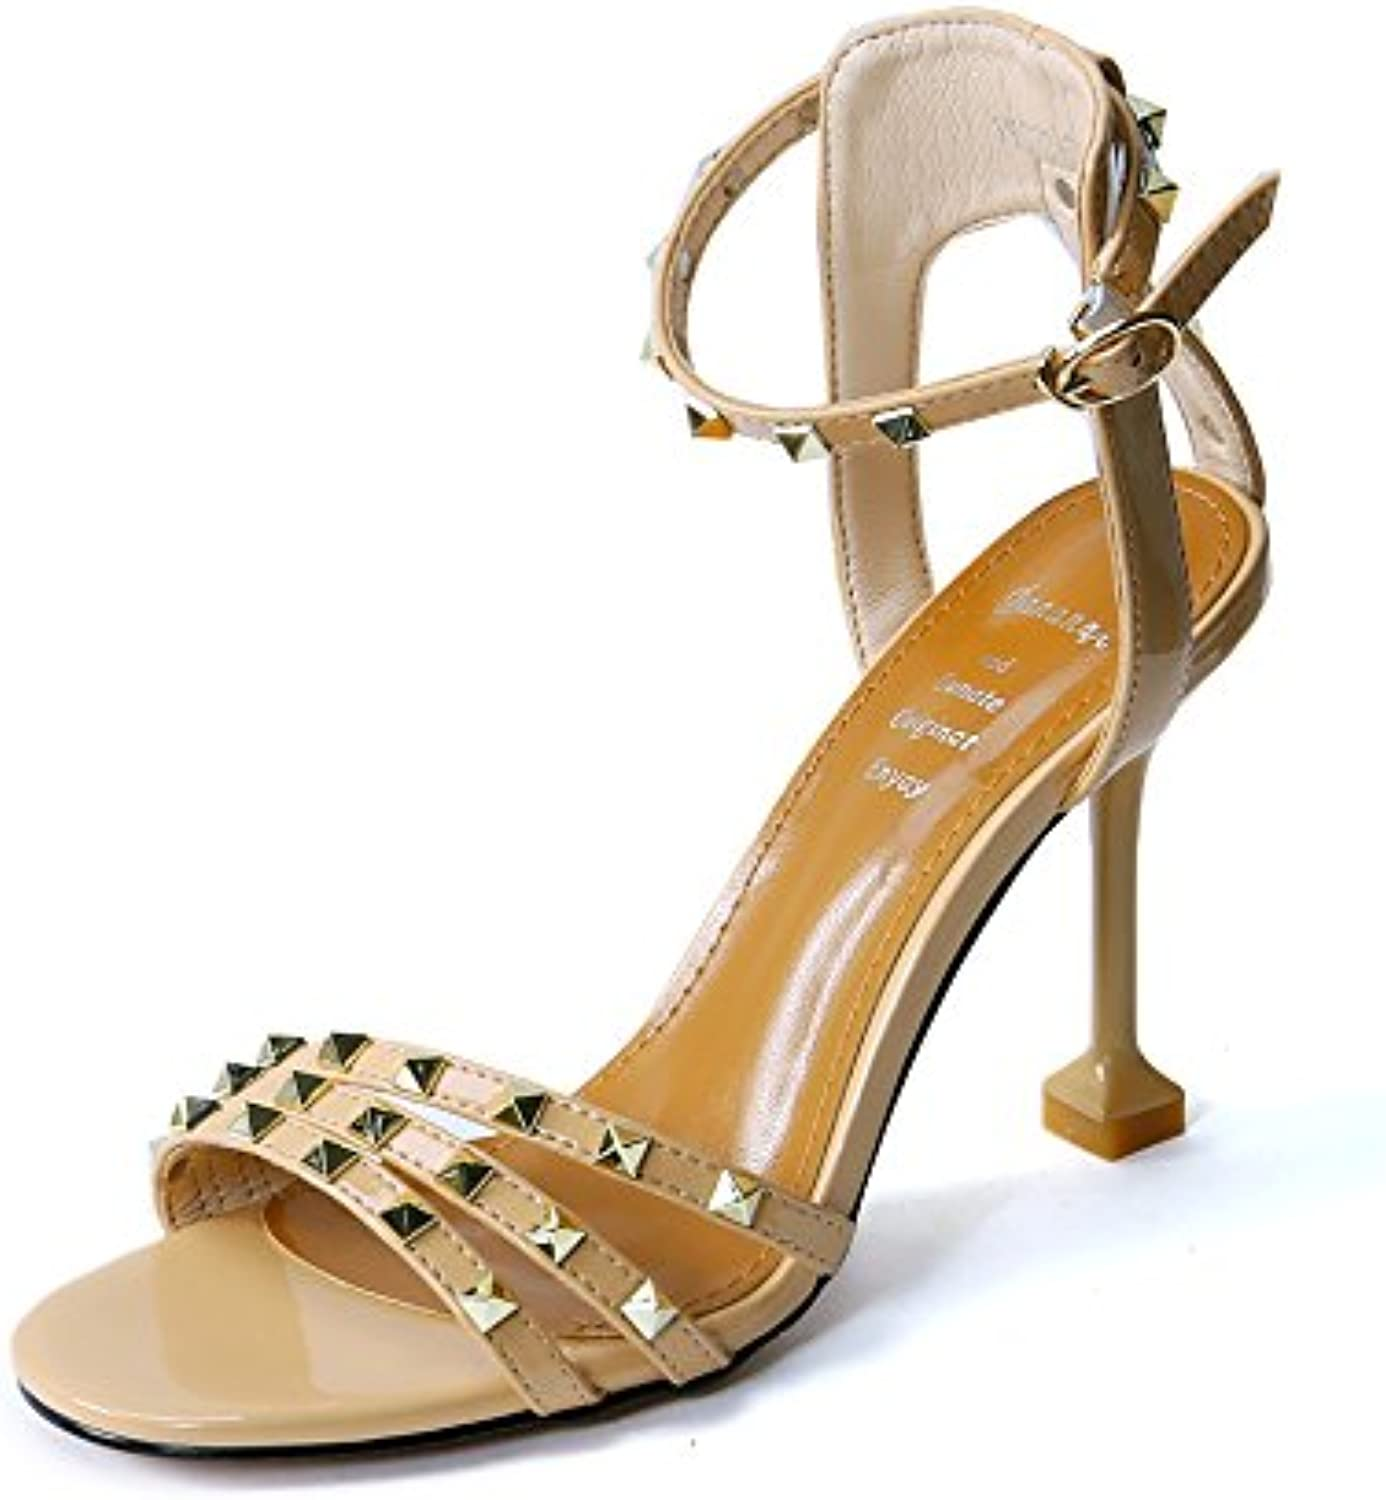 LGK&FA The Same Pair of High Heeled Shoes Female Toes Fashion Rivets Thin and Hollow Buckles with Sandals. Thirty-Five...